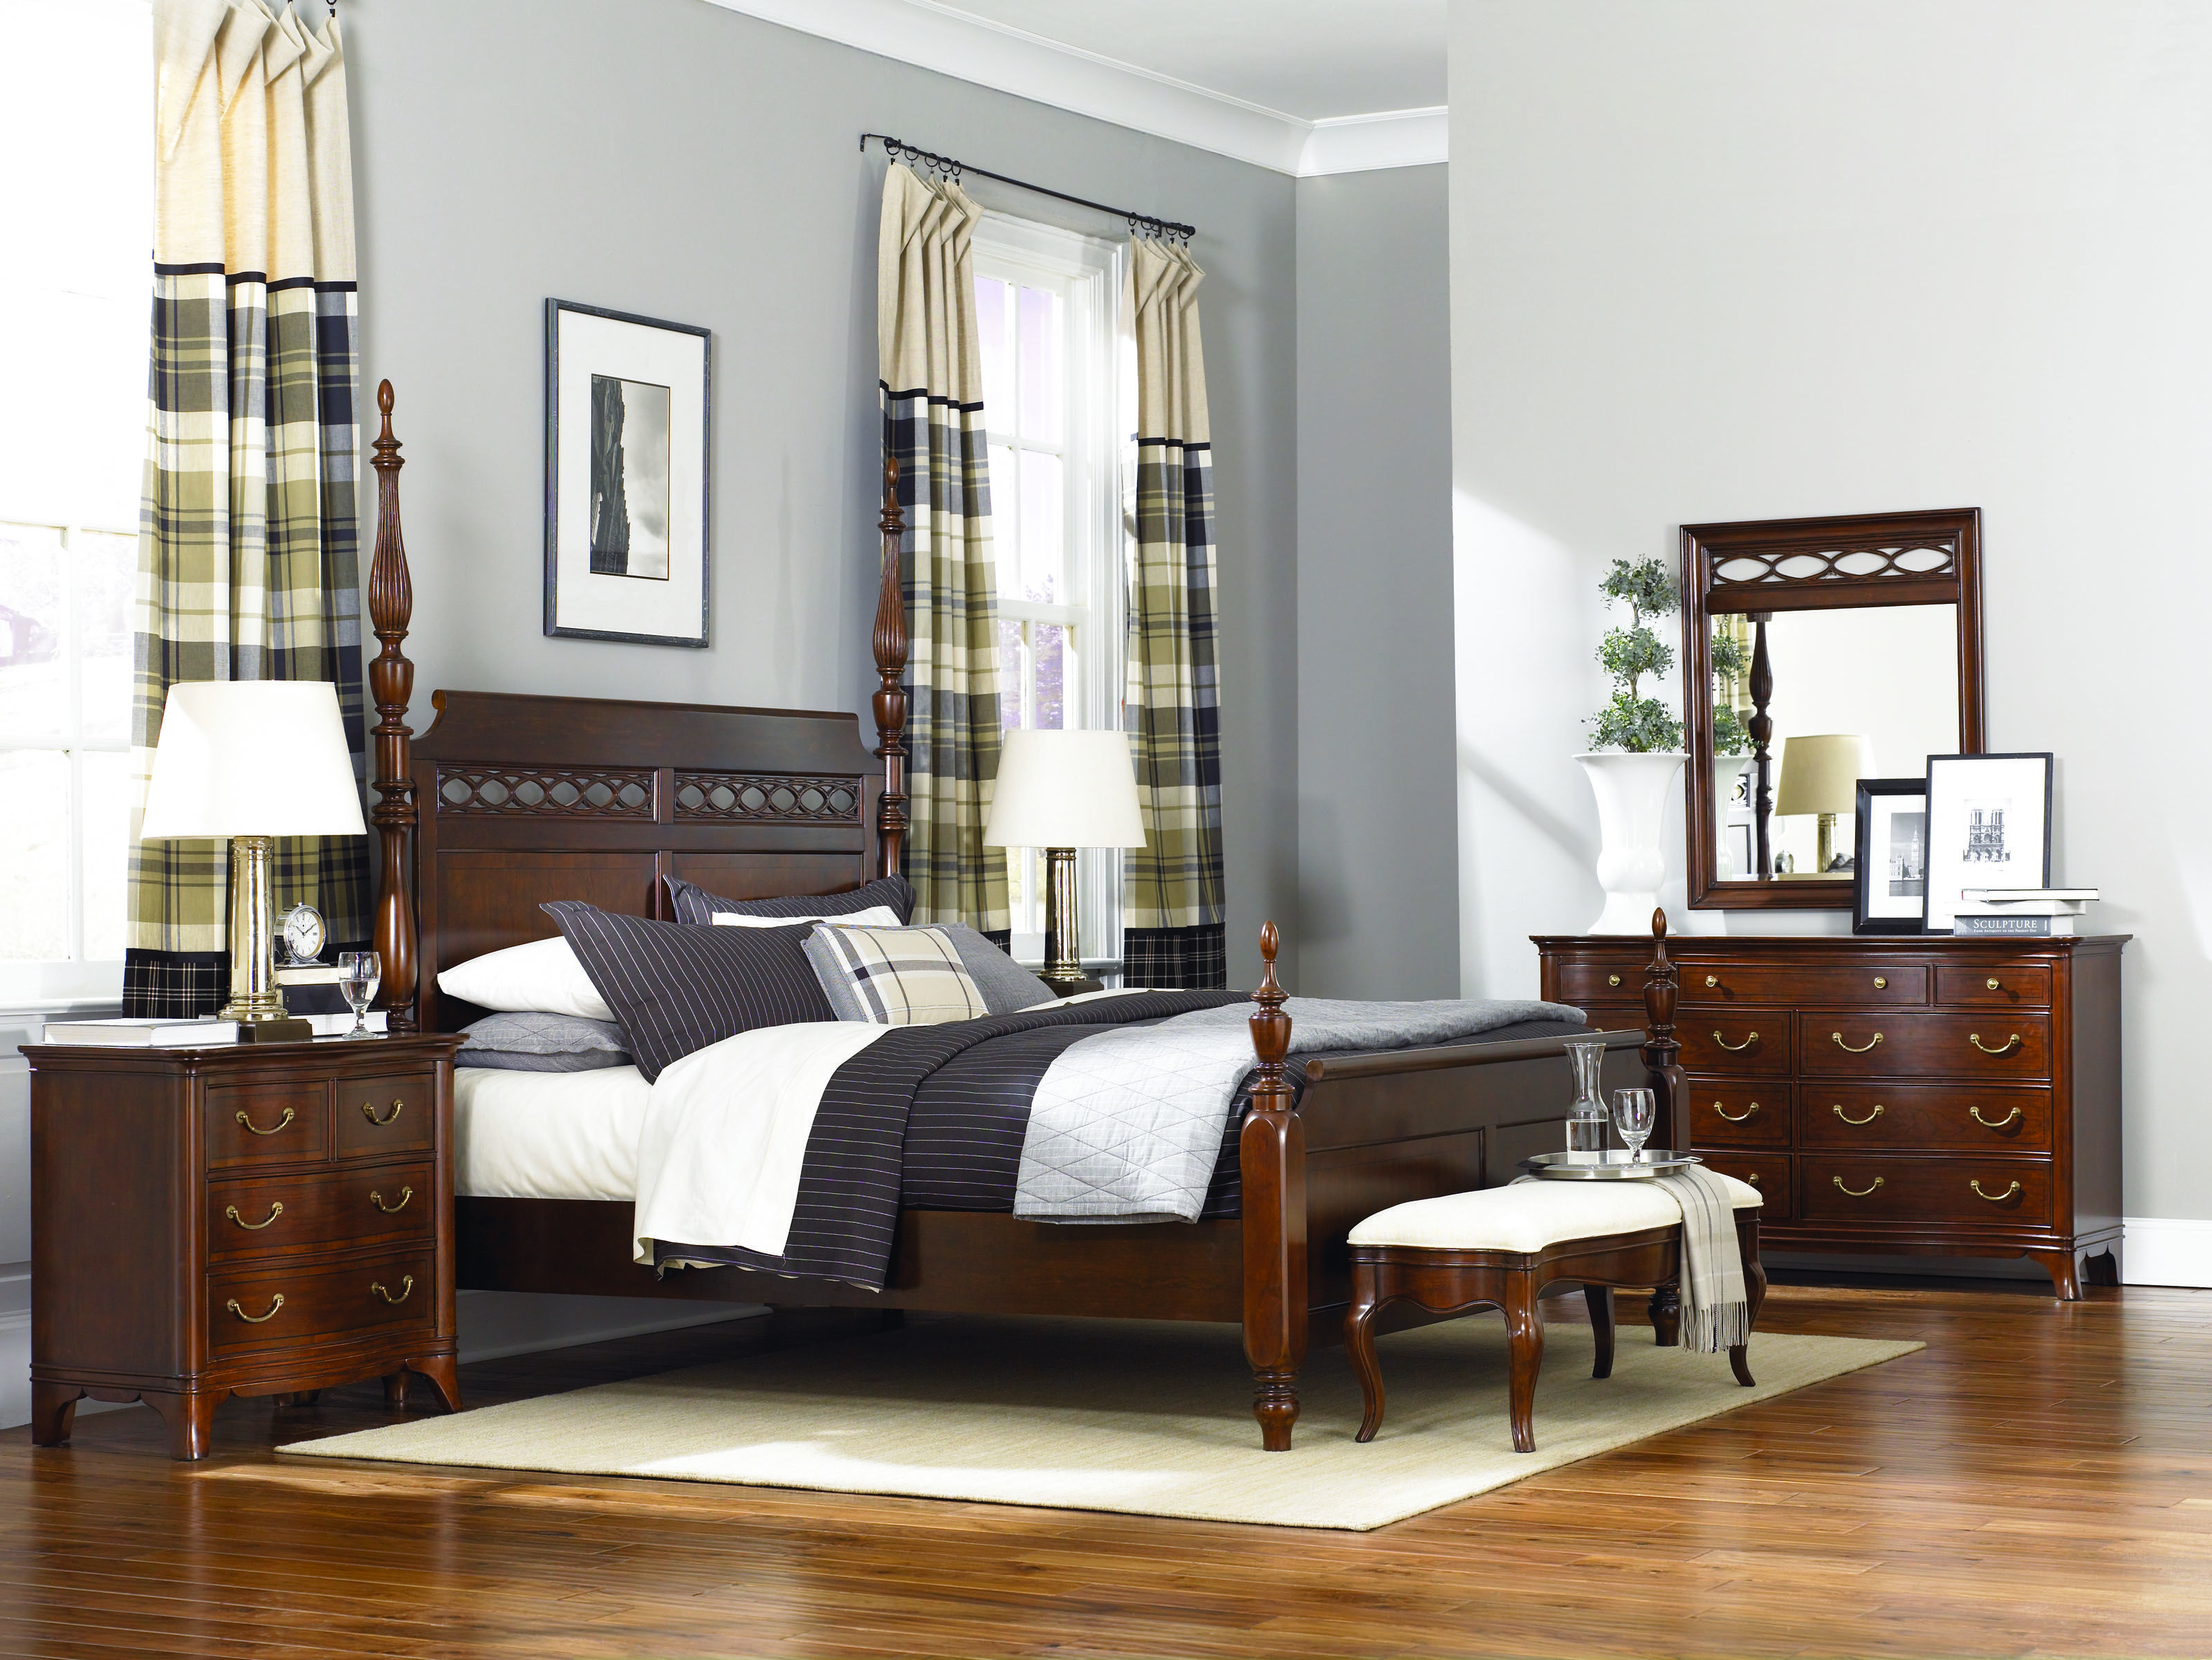 eclipse bedroom bed lynnwood collection furniture cherry tree with